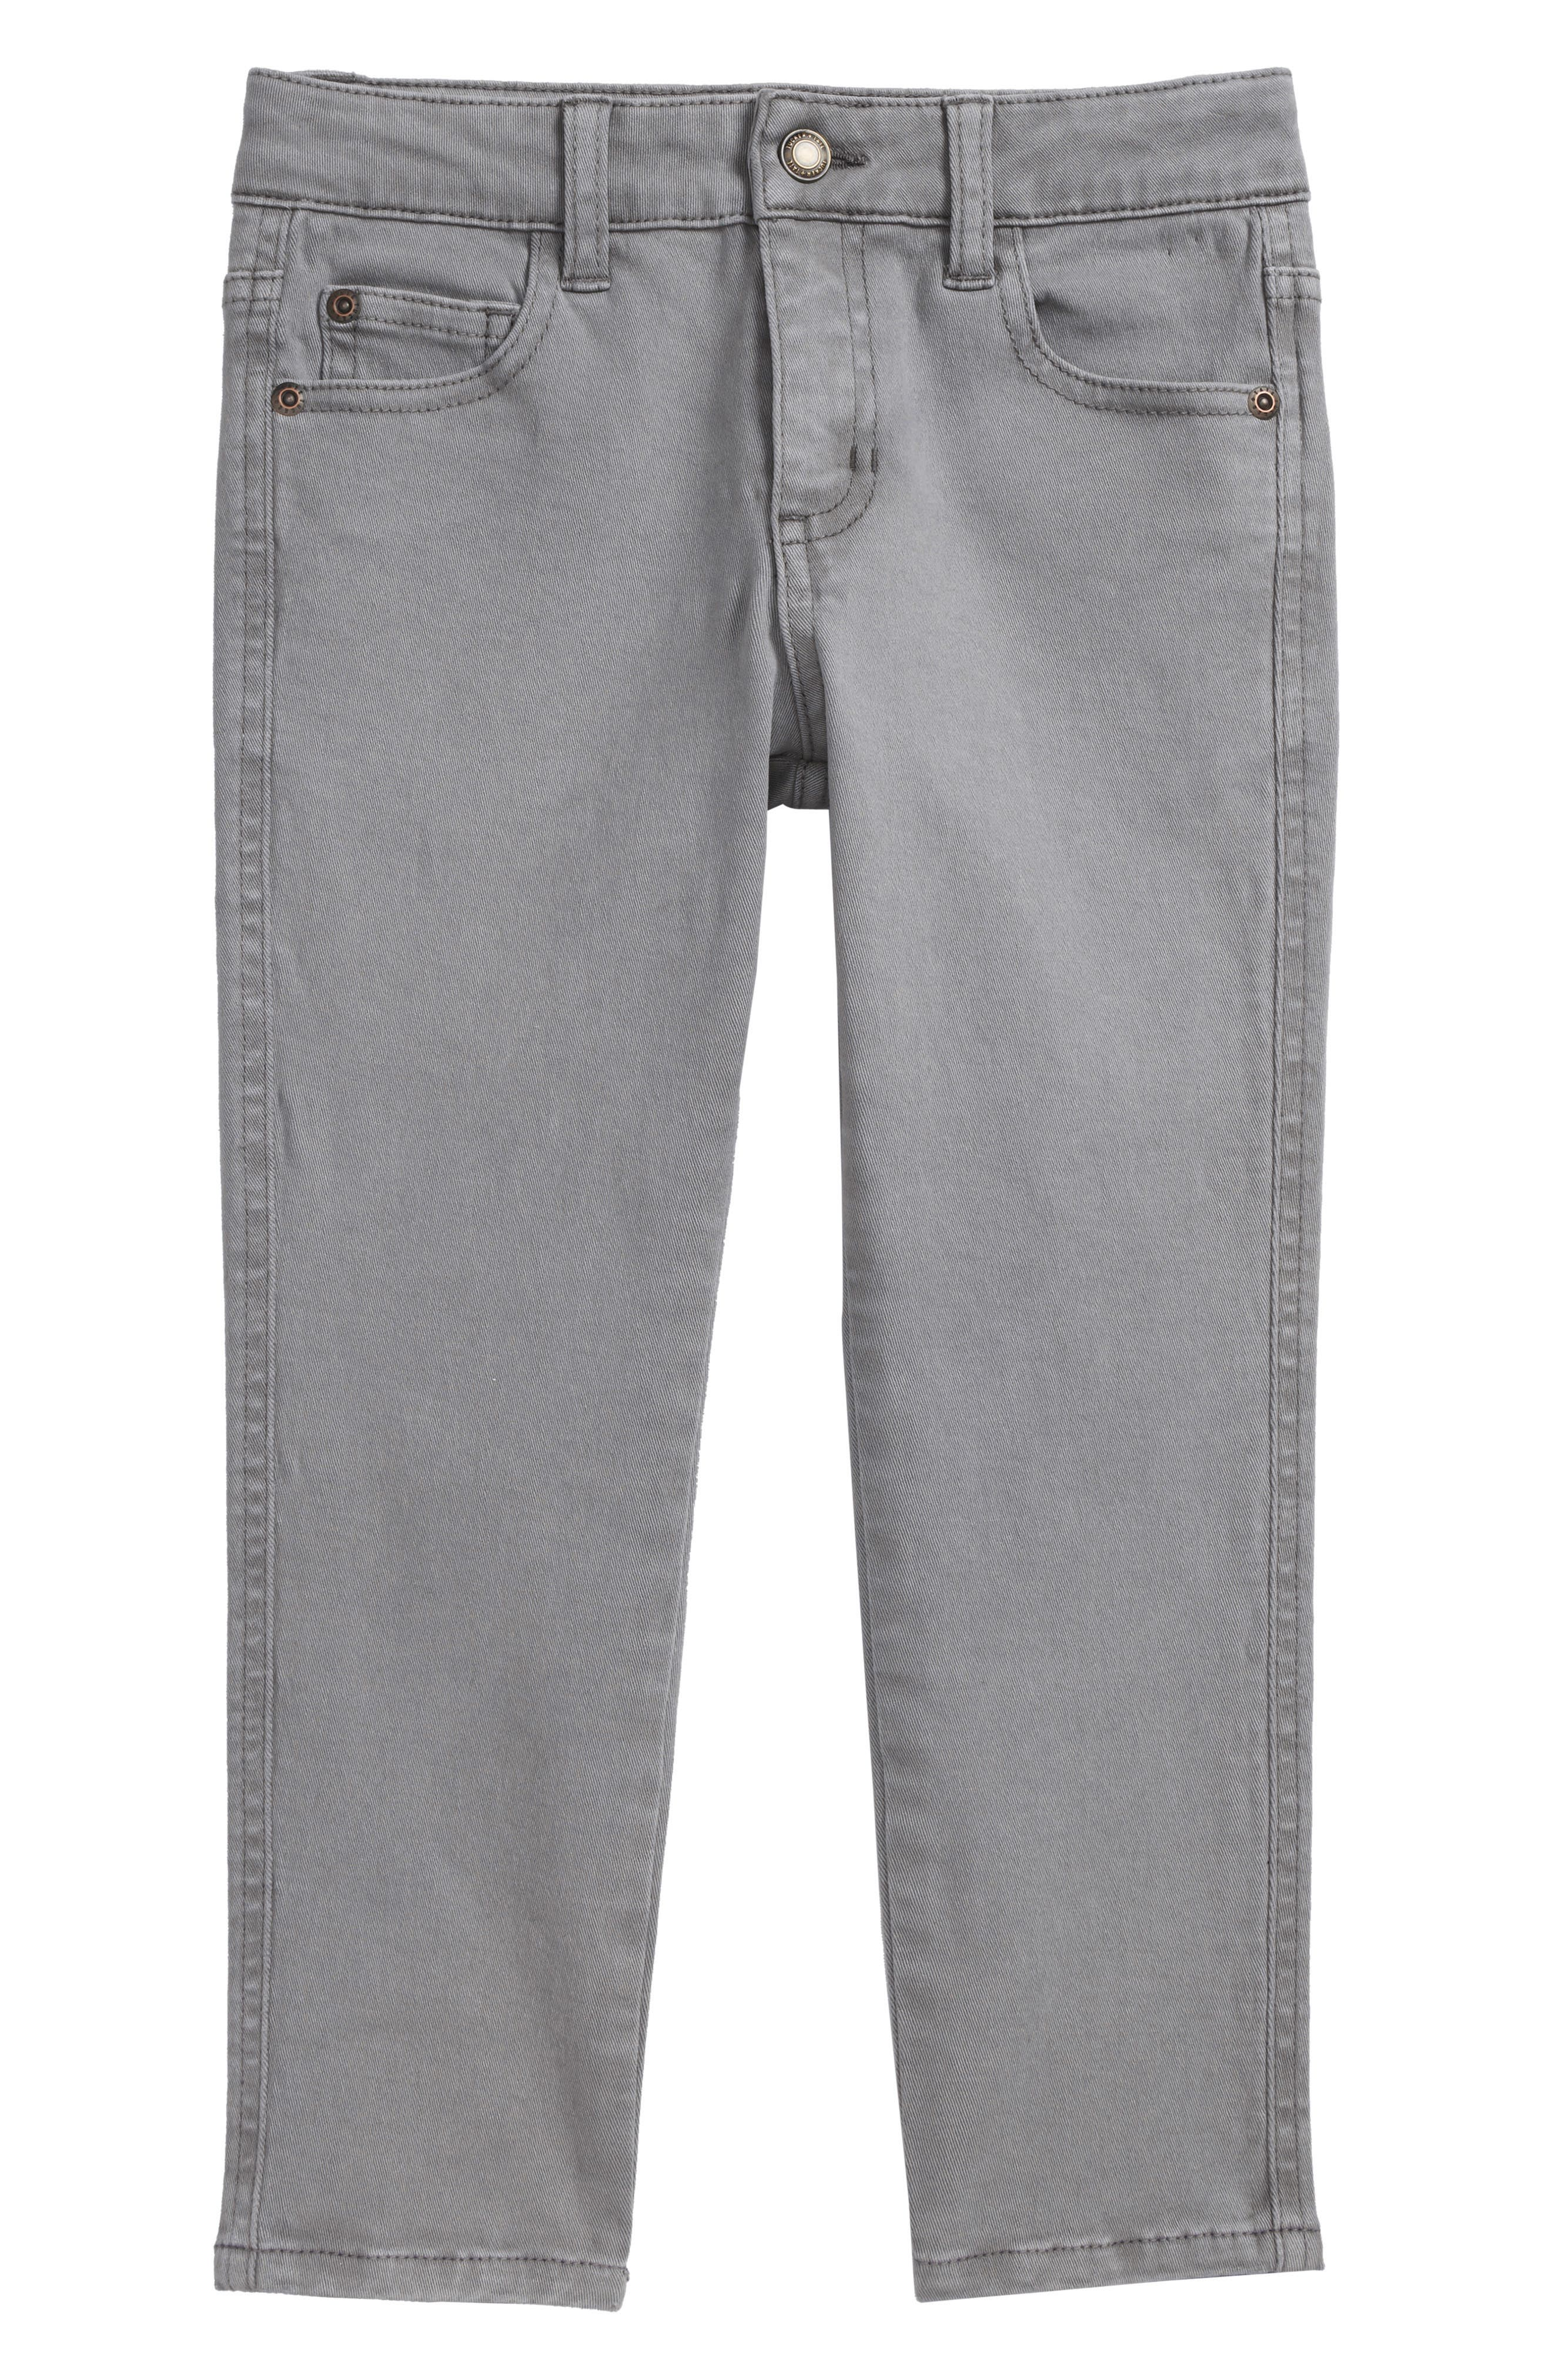 Stretch Chino Pants,                             Main thumbnail 1, color,                             GREY FROST